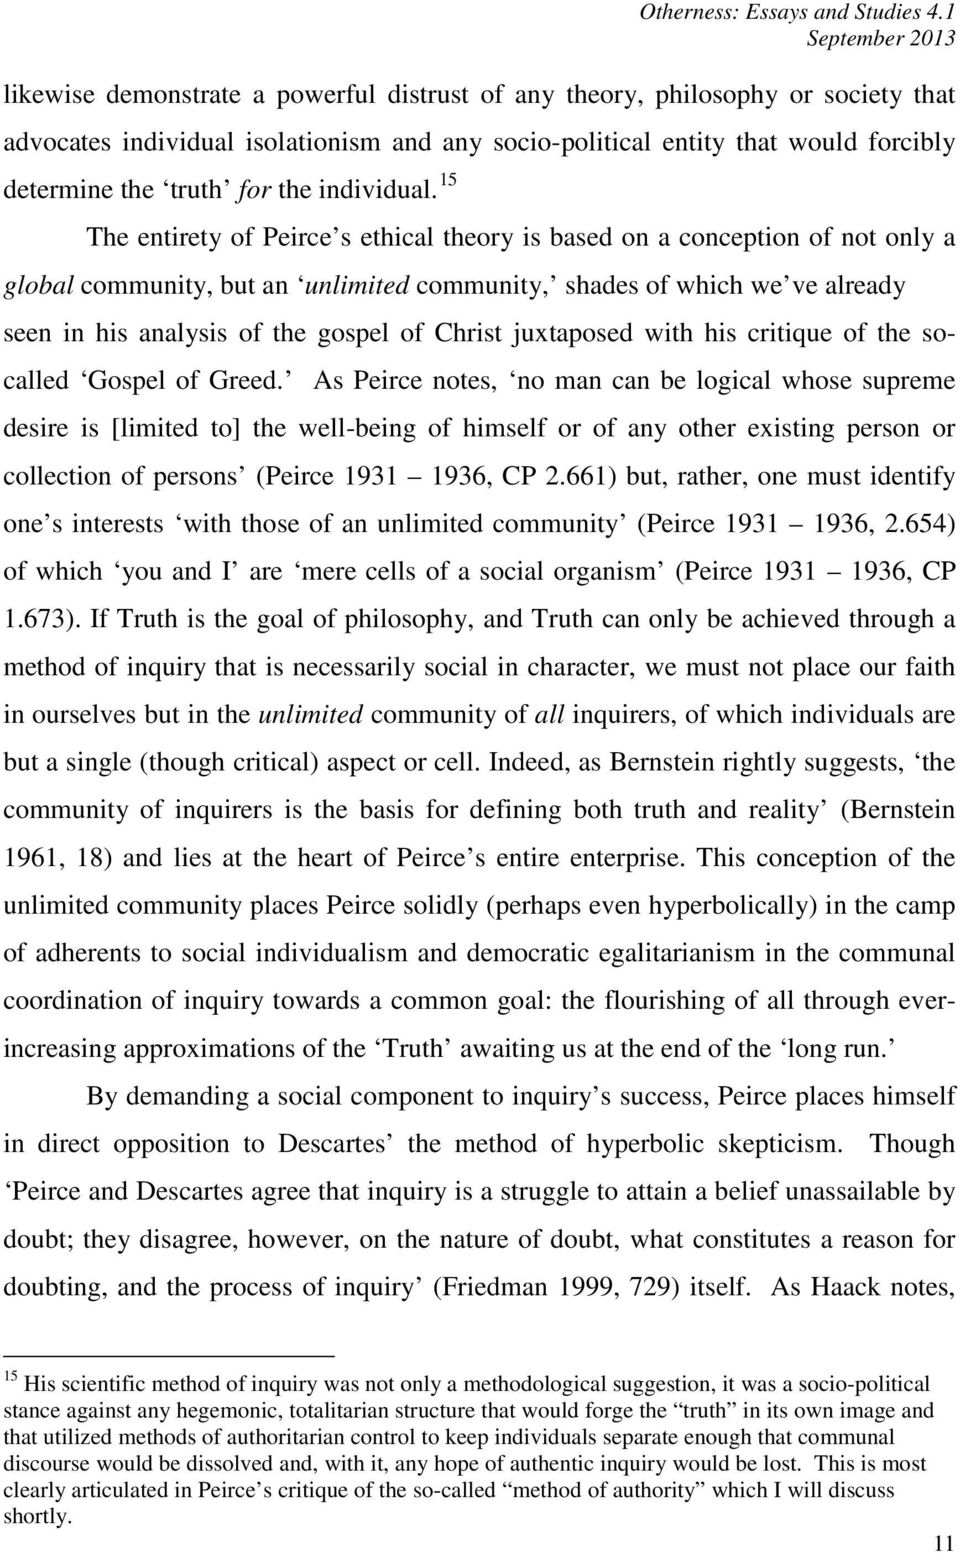 15 The entirety of Peirce s ethical theory is based on a conception of not only a global community, but an unlimited community, shades of which we ve already seen in his analysis of the gospel of